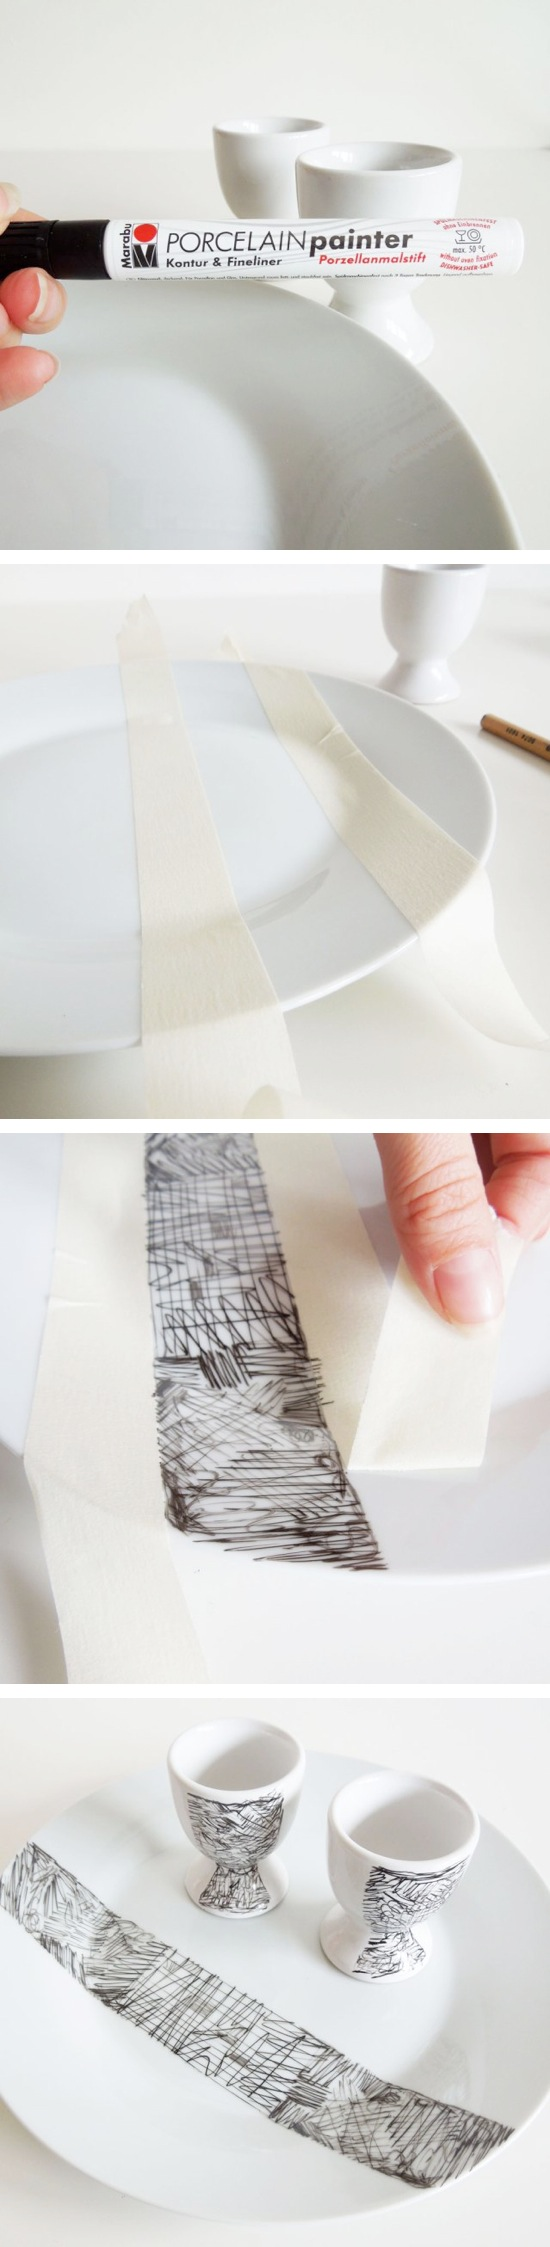 Scribble Decorated Porcelain | Craft By Photo